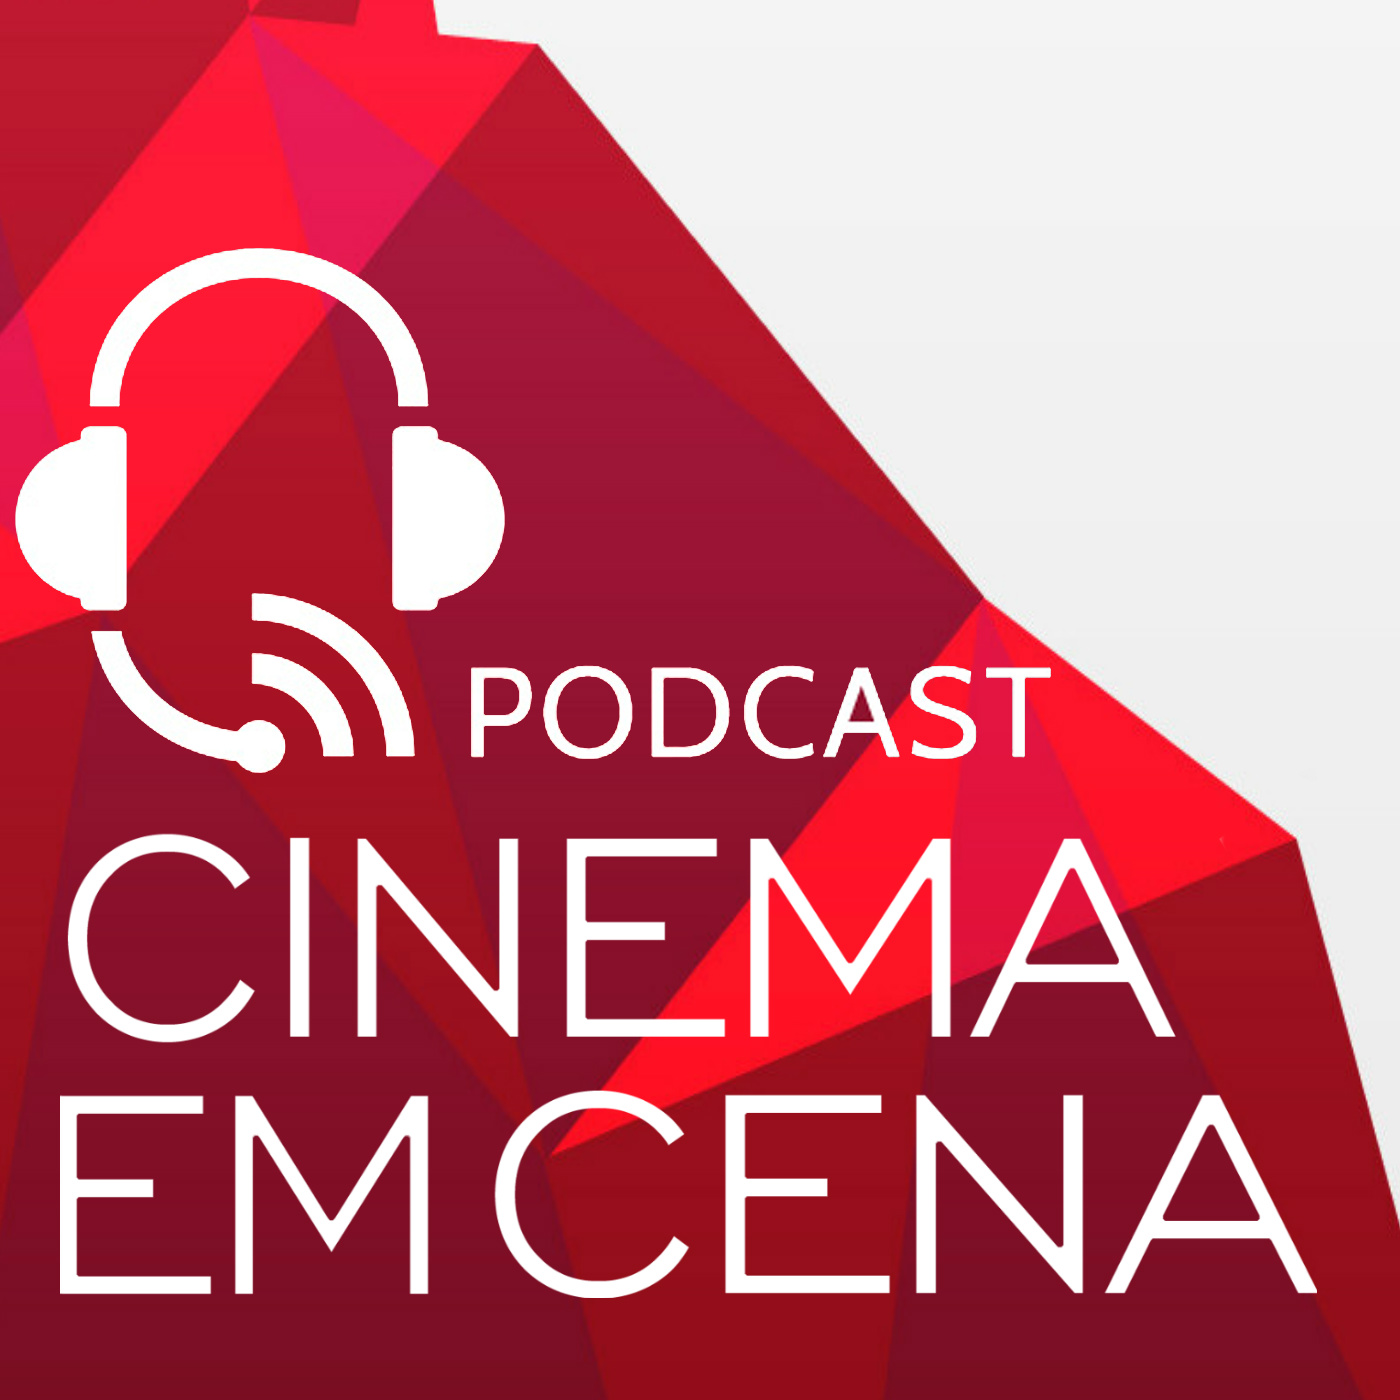 PODCAST #175: Os Beatles no Cinema - Parte 1